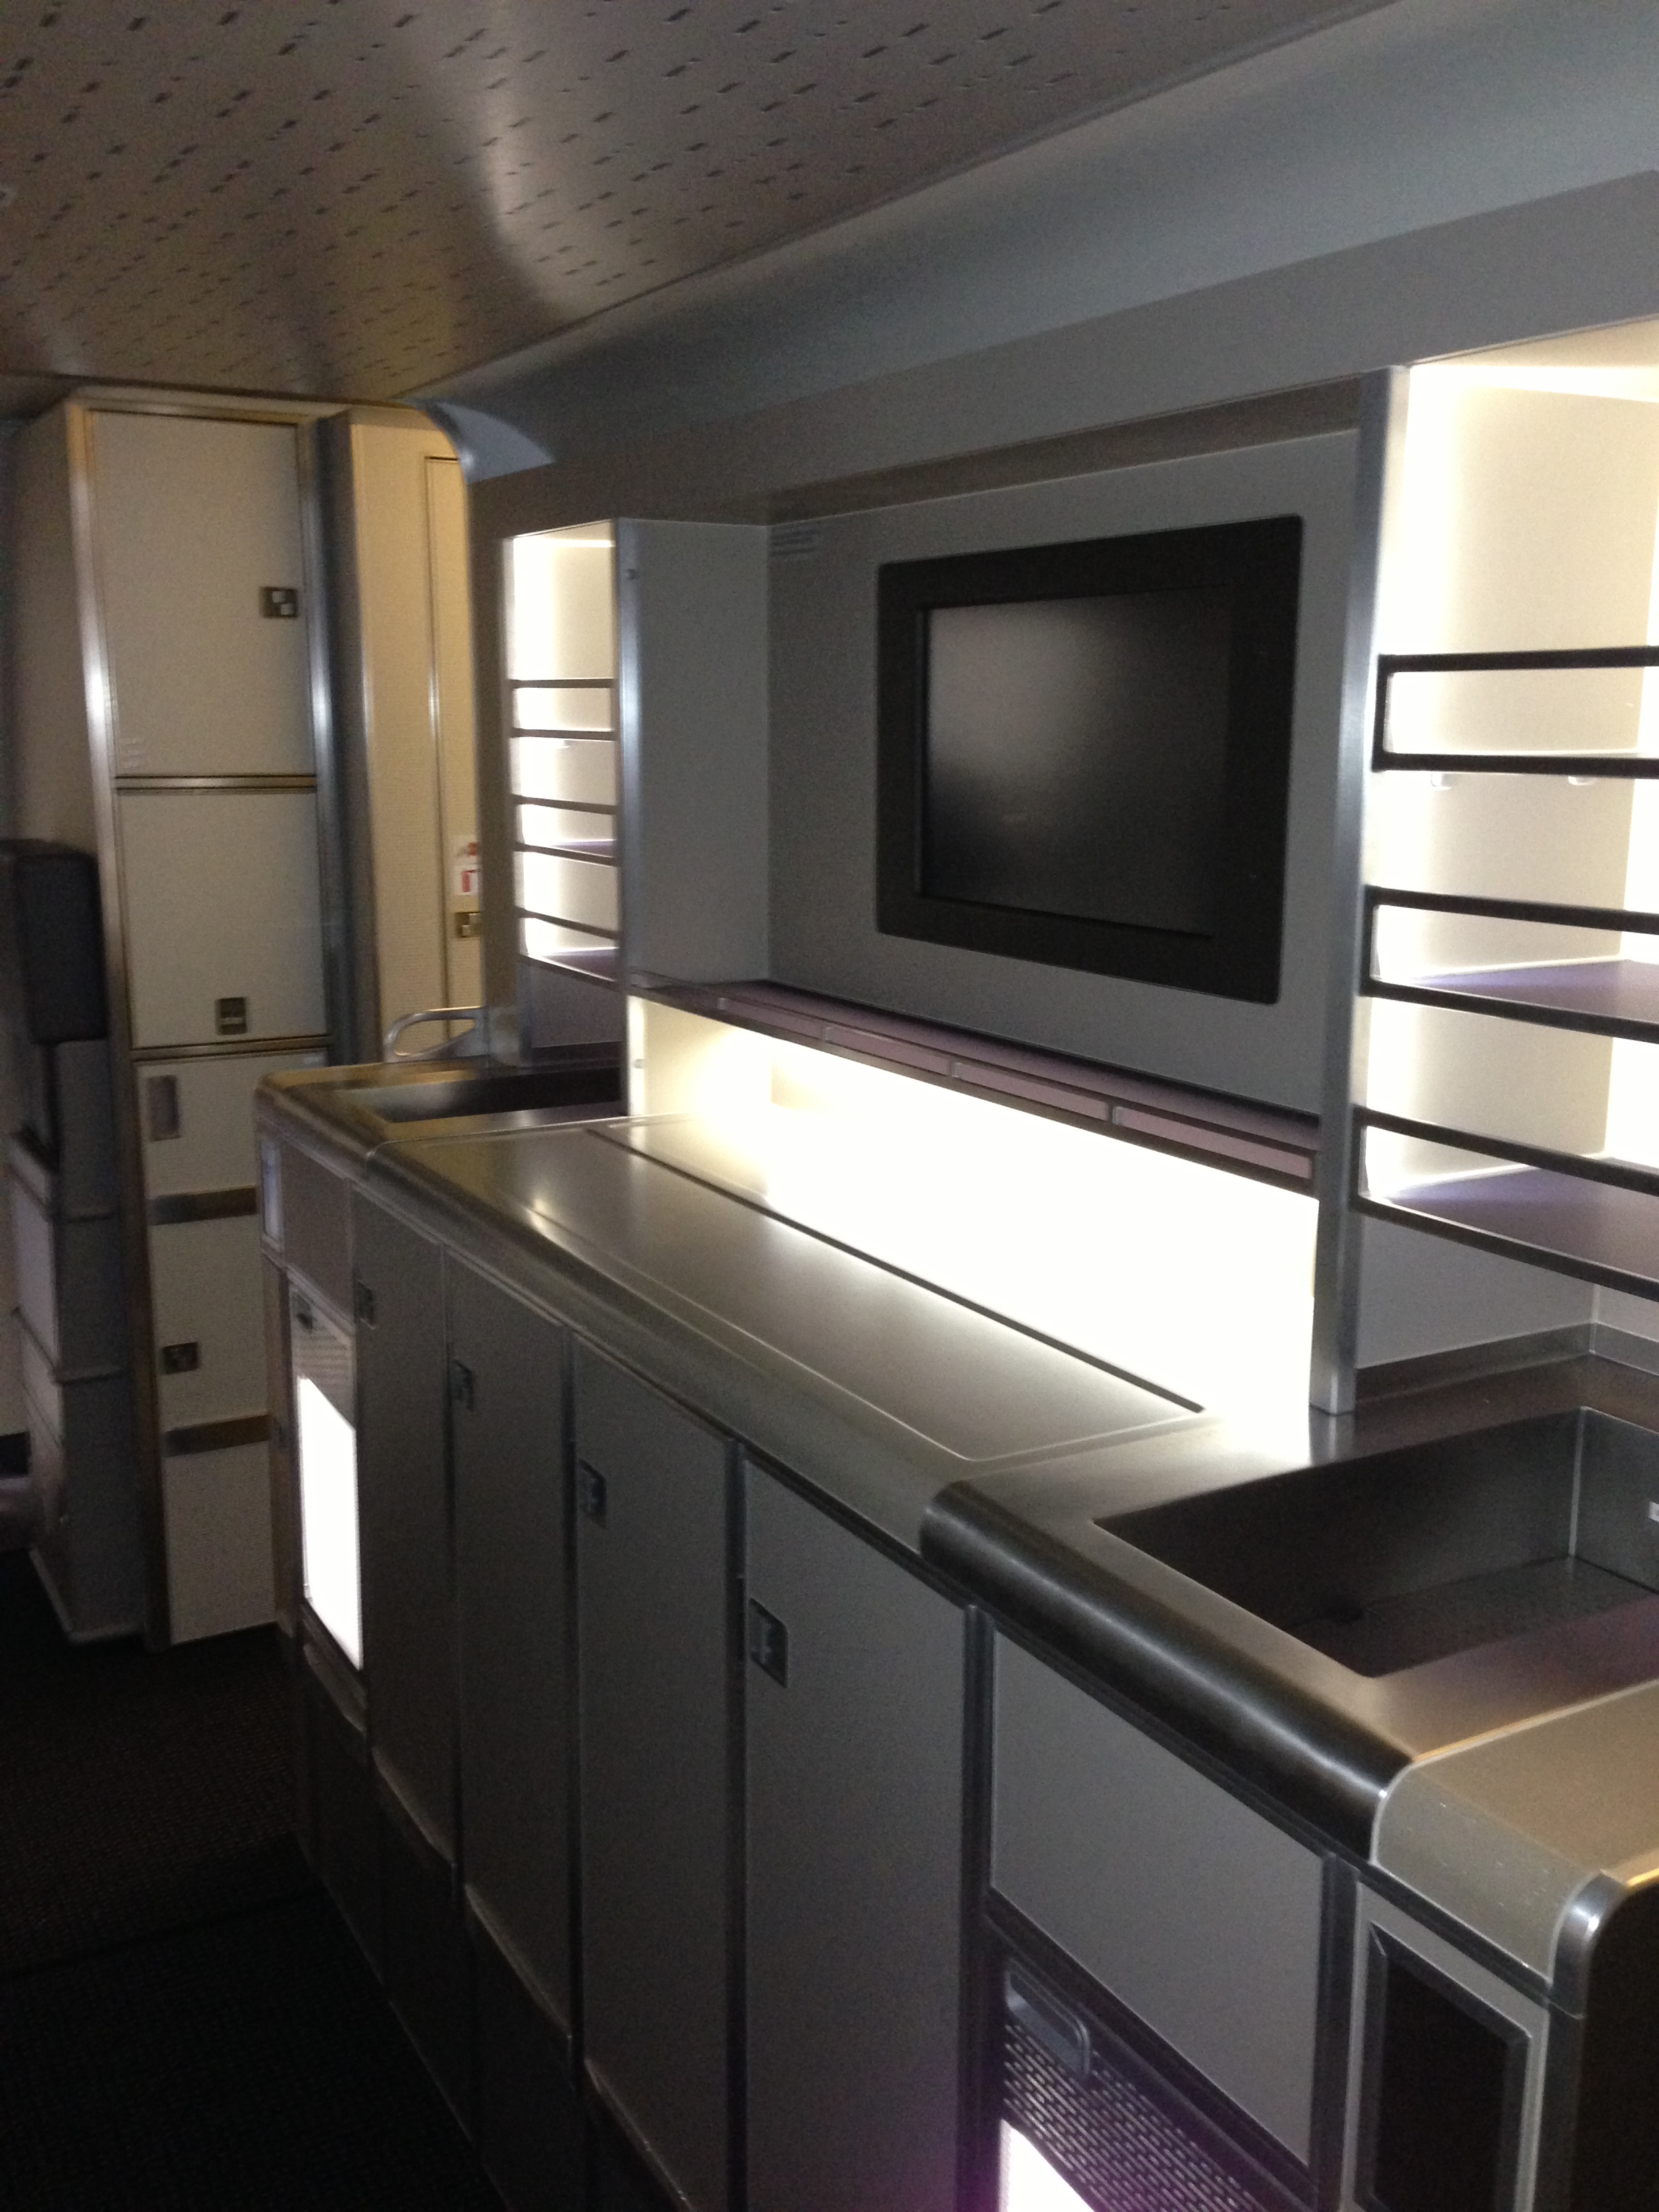 Some photos of American Airlines 777 300ER Airlines Dallas News